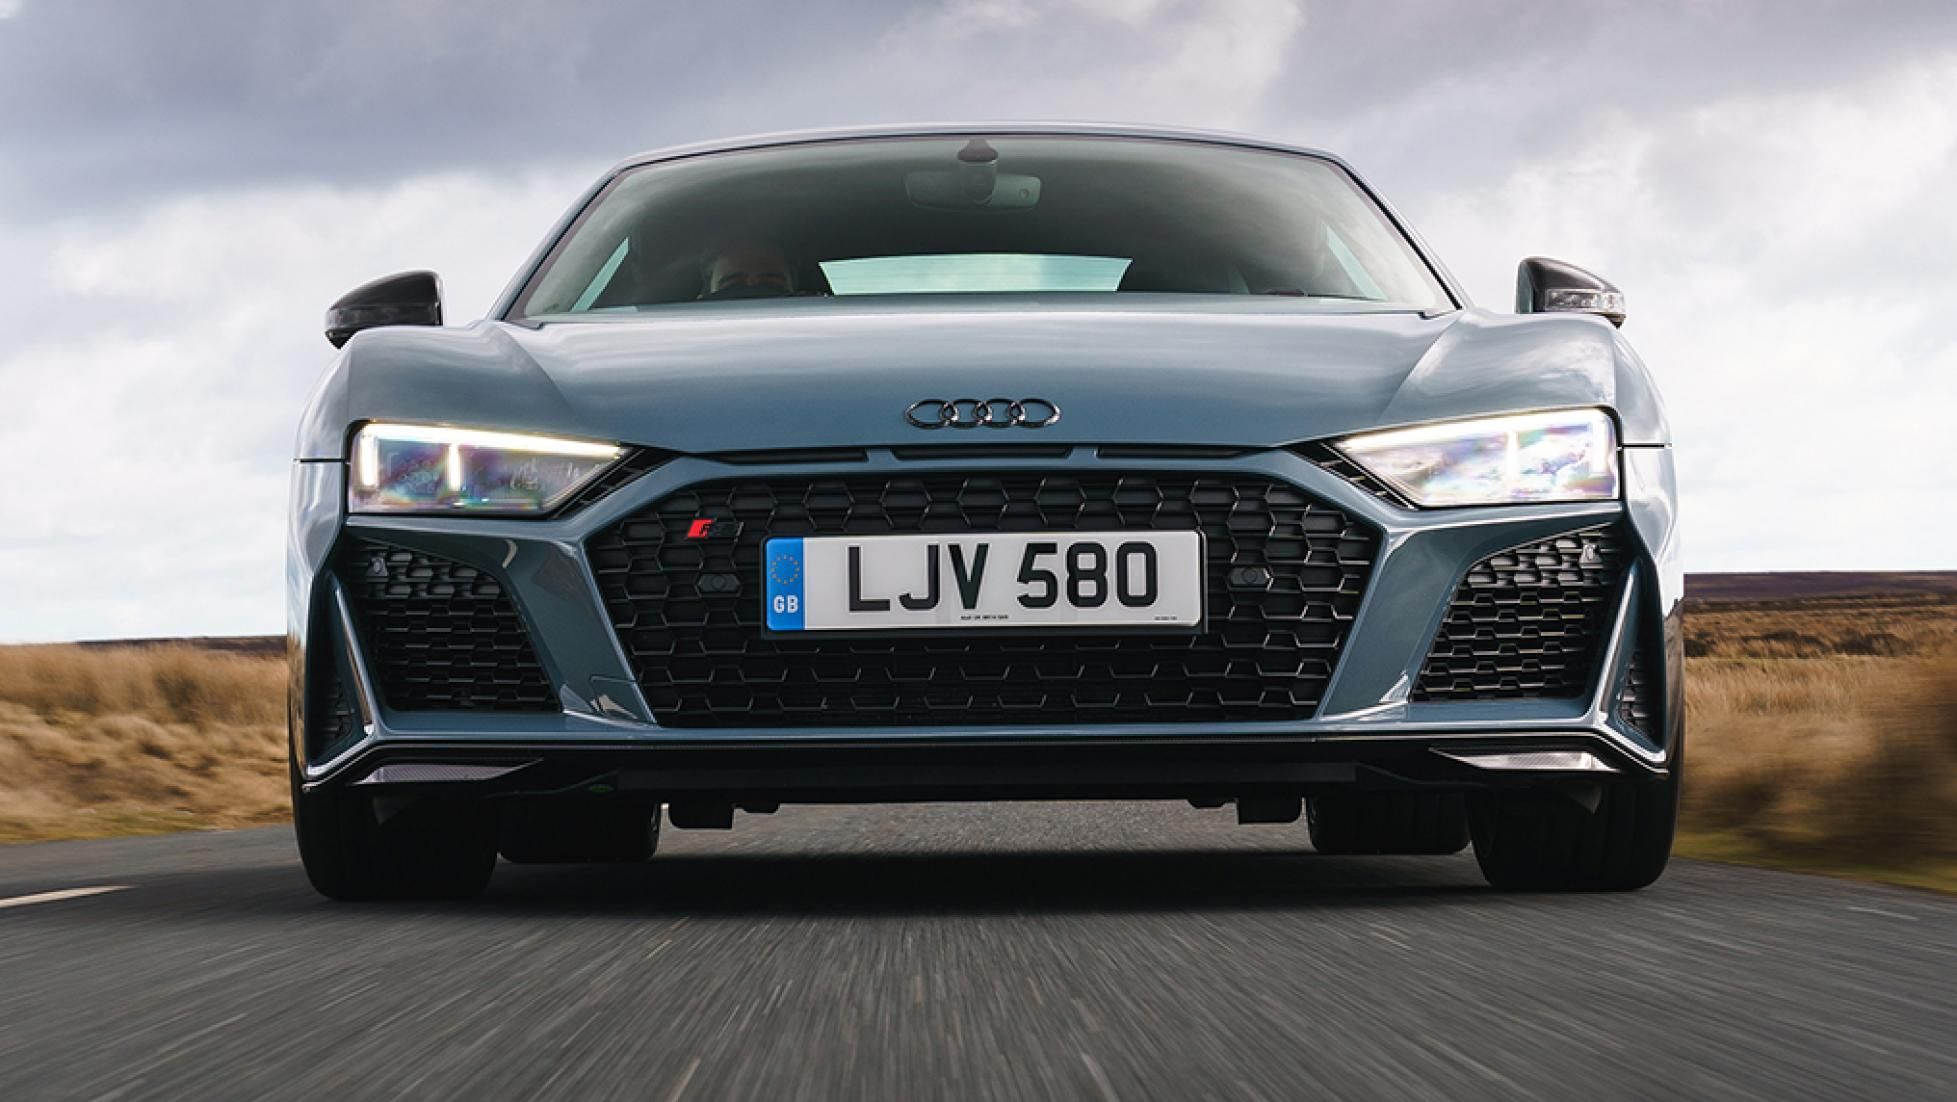 Audi r8 v10 performance review yes its all about that